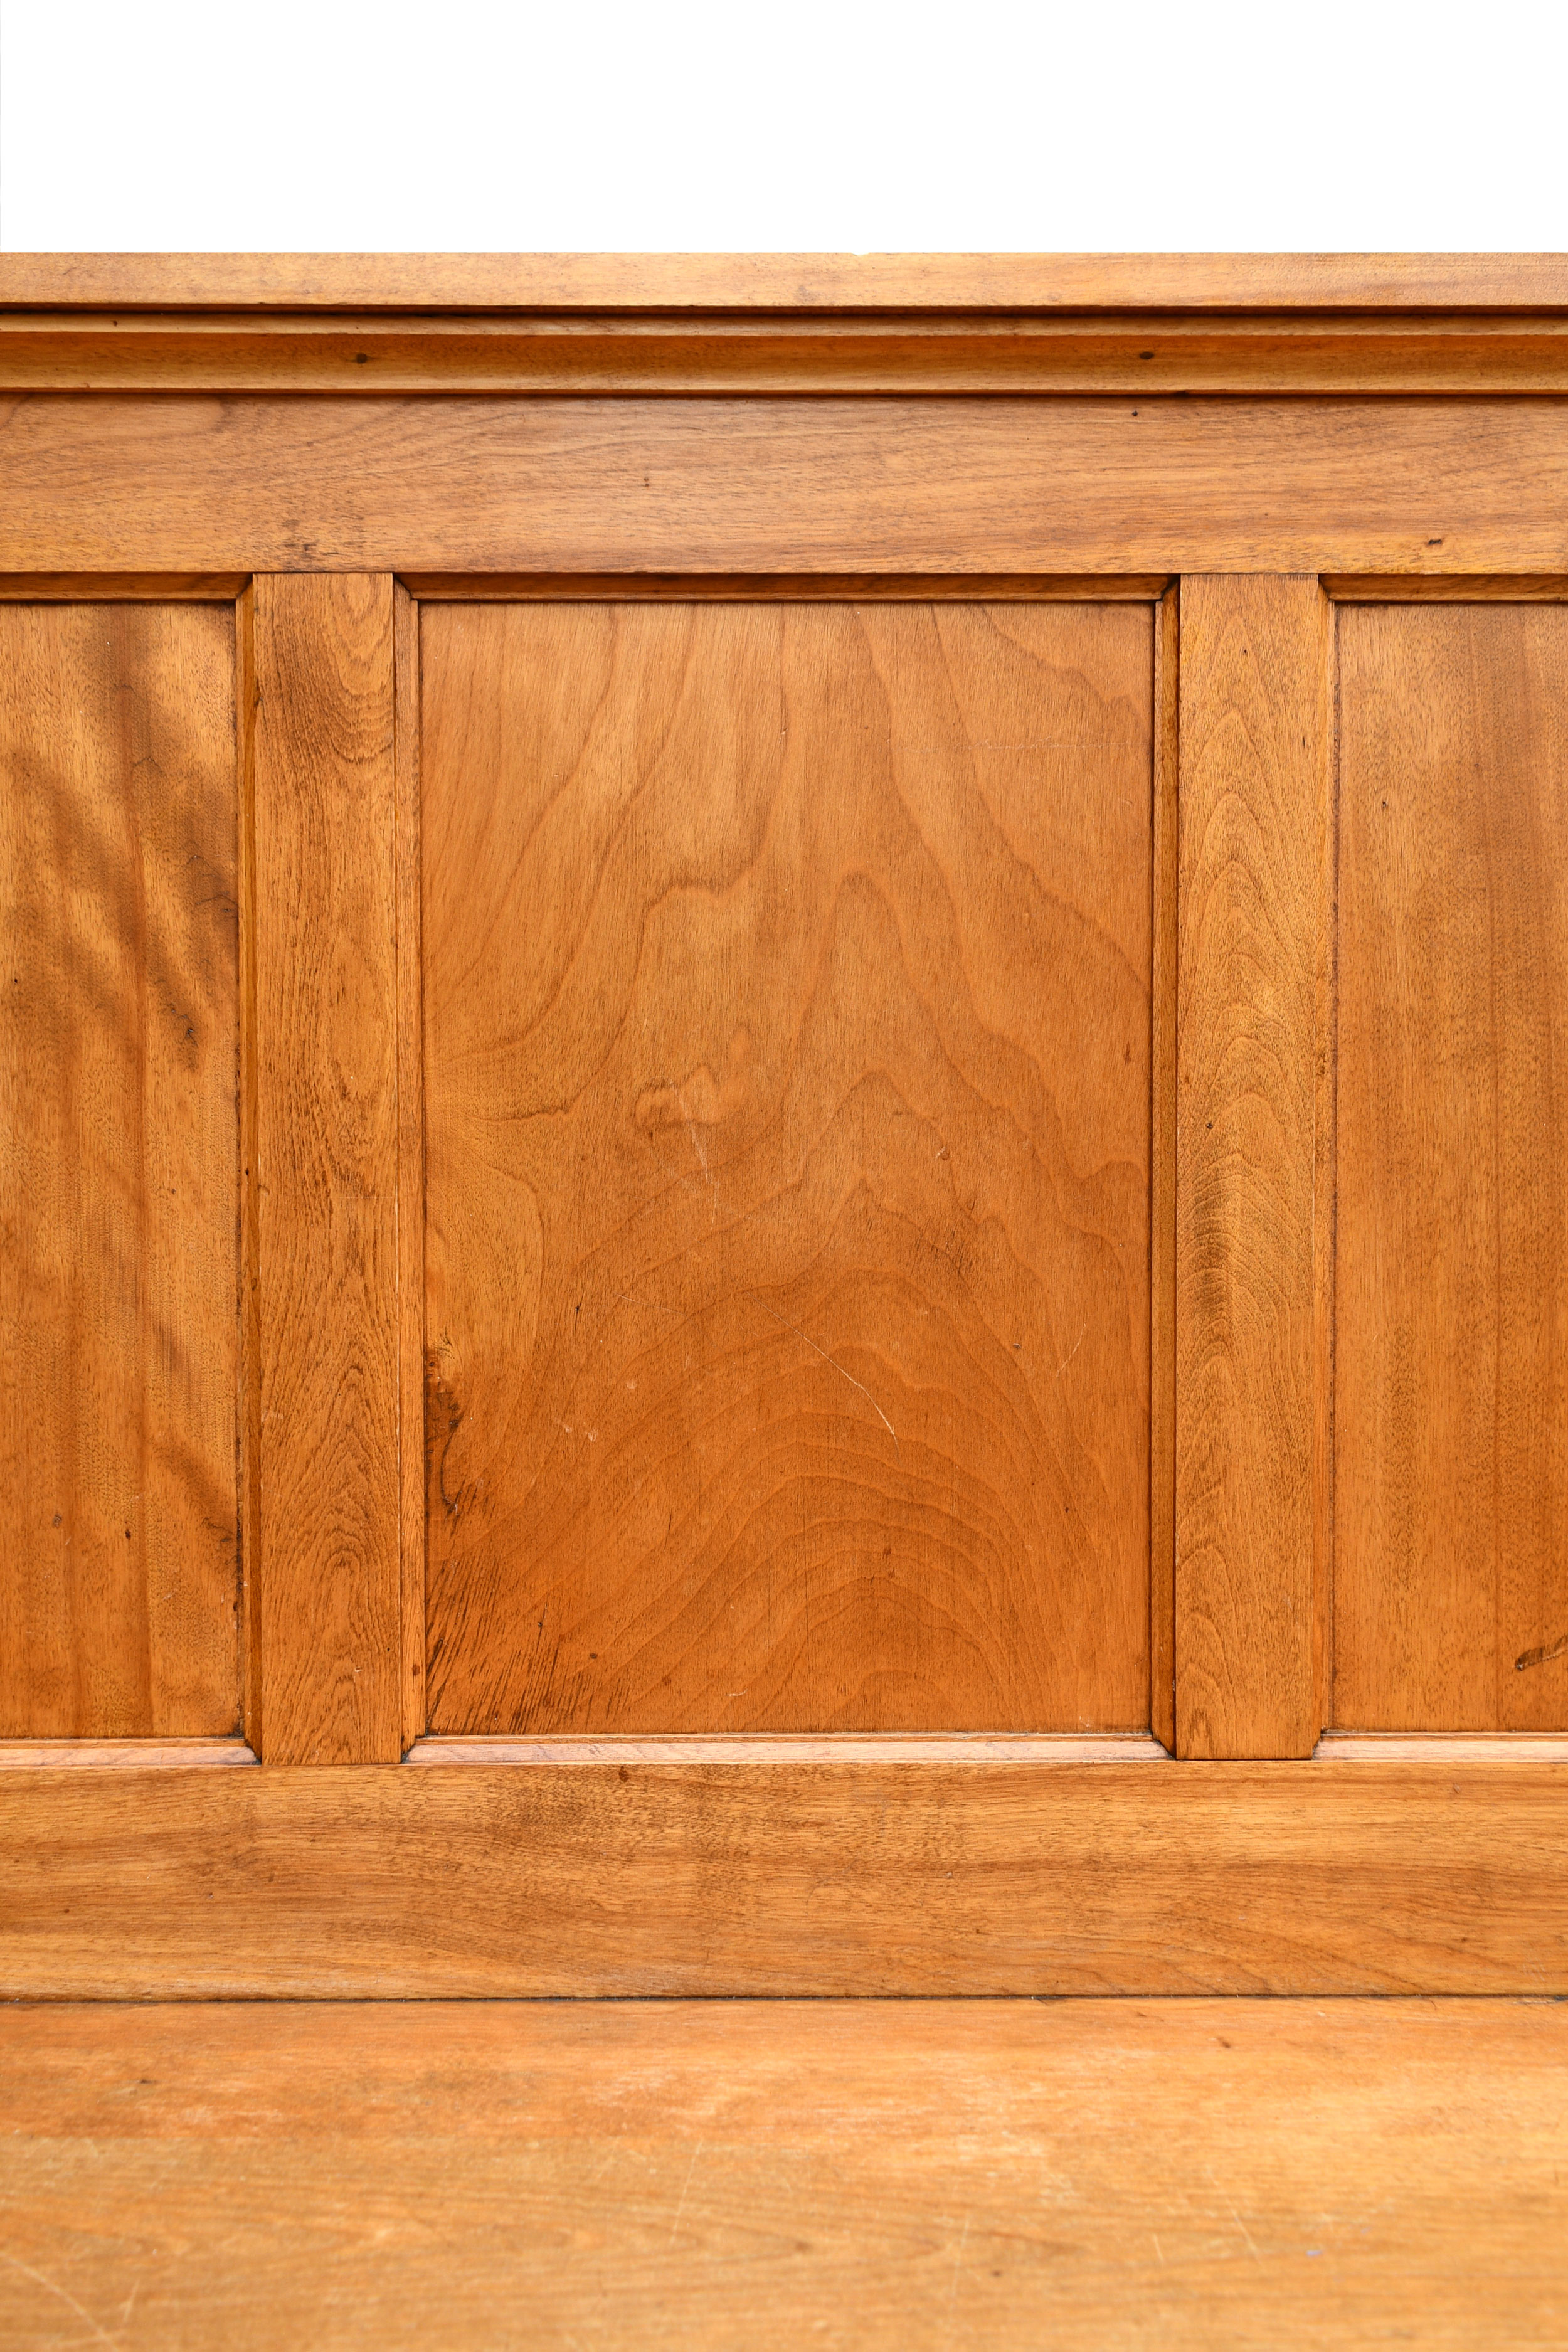 48337-maple-booth-bench-close-up.jpg